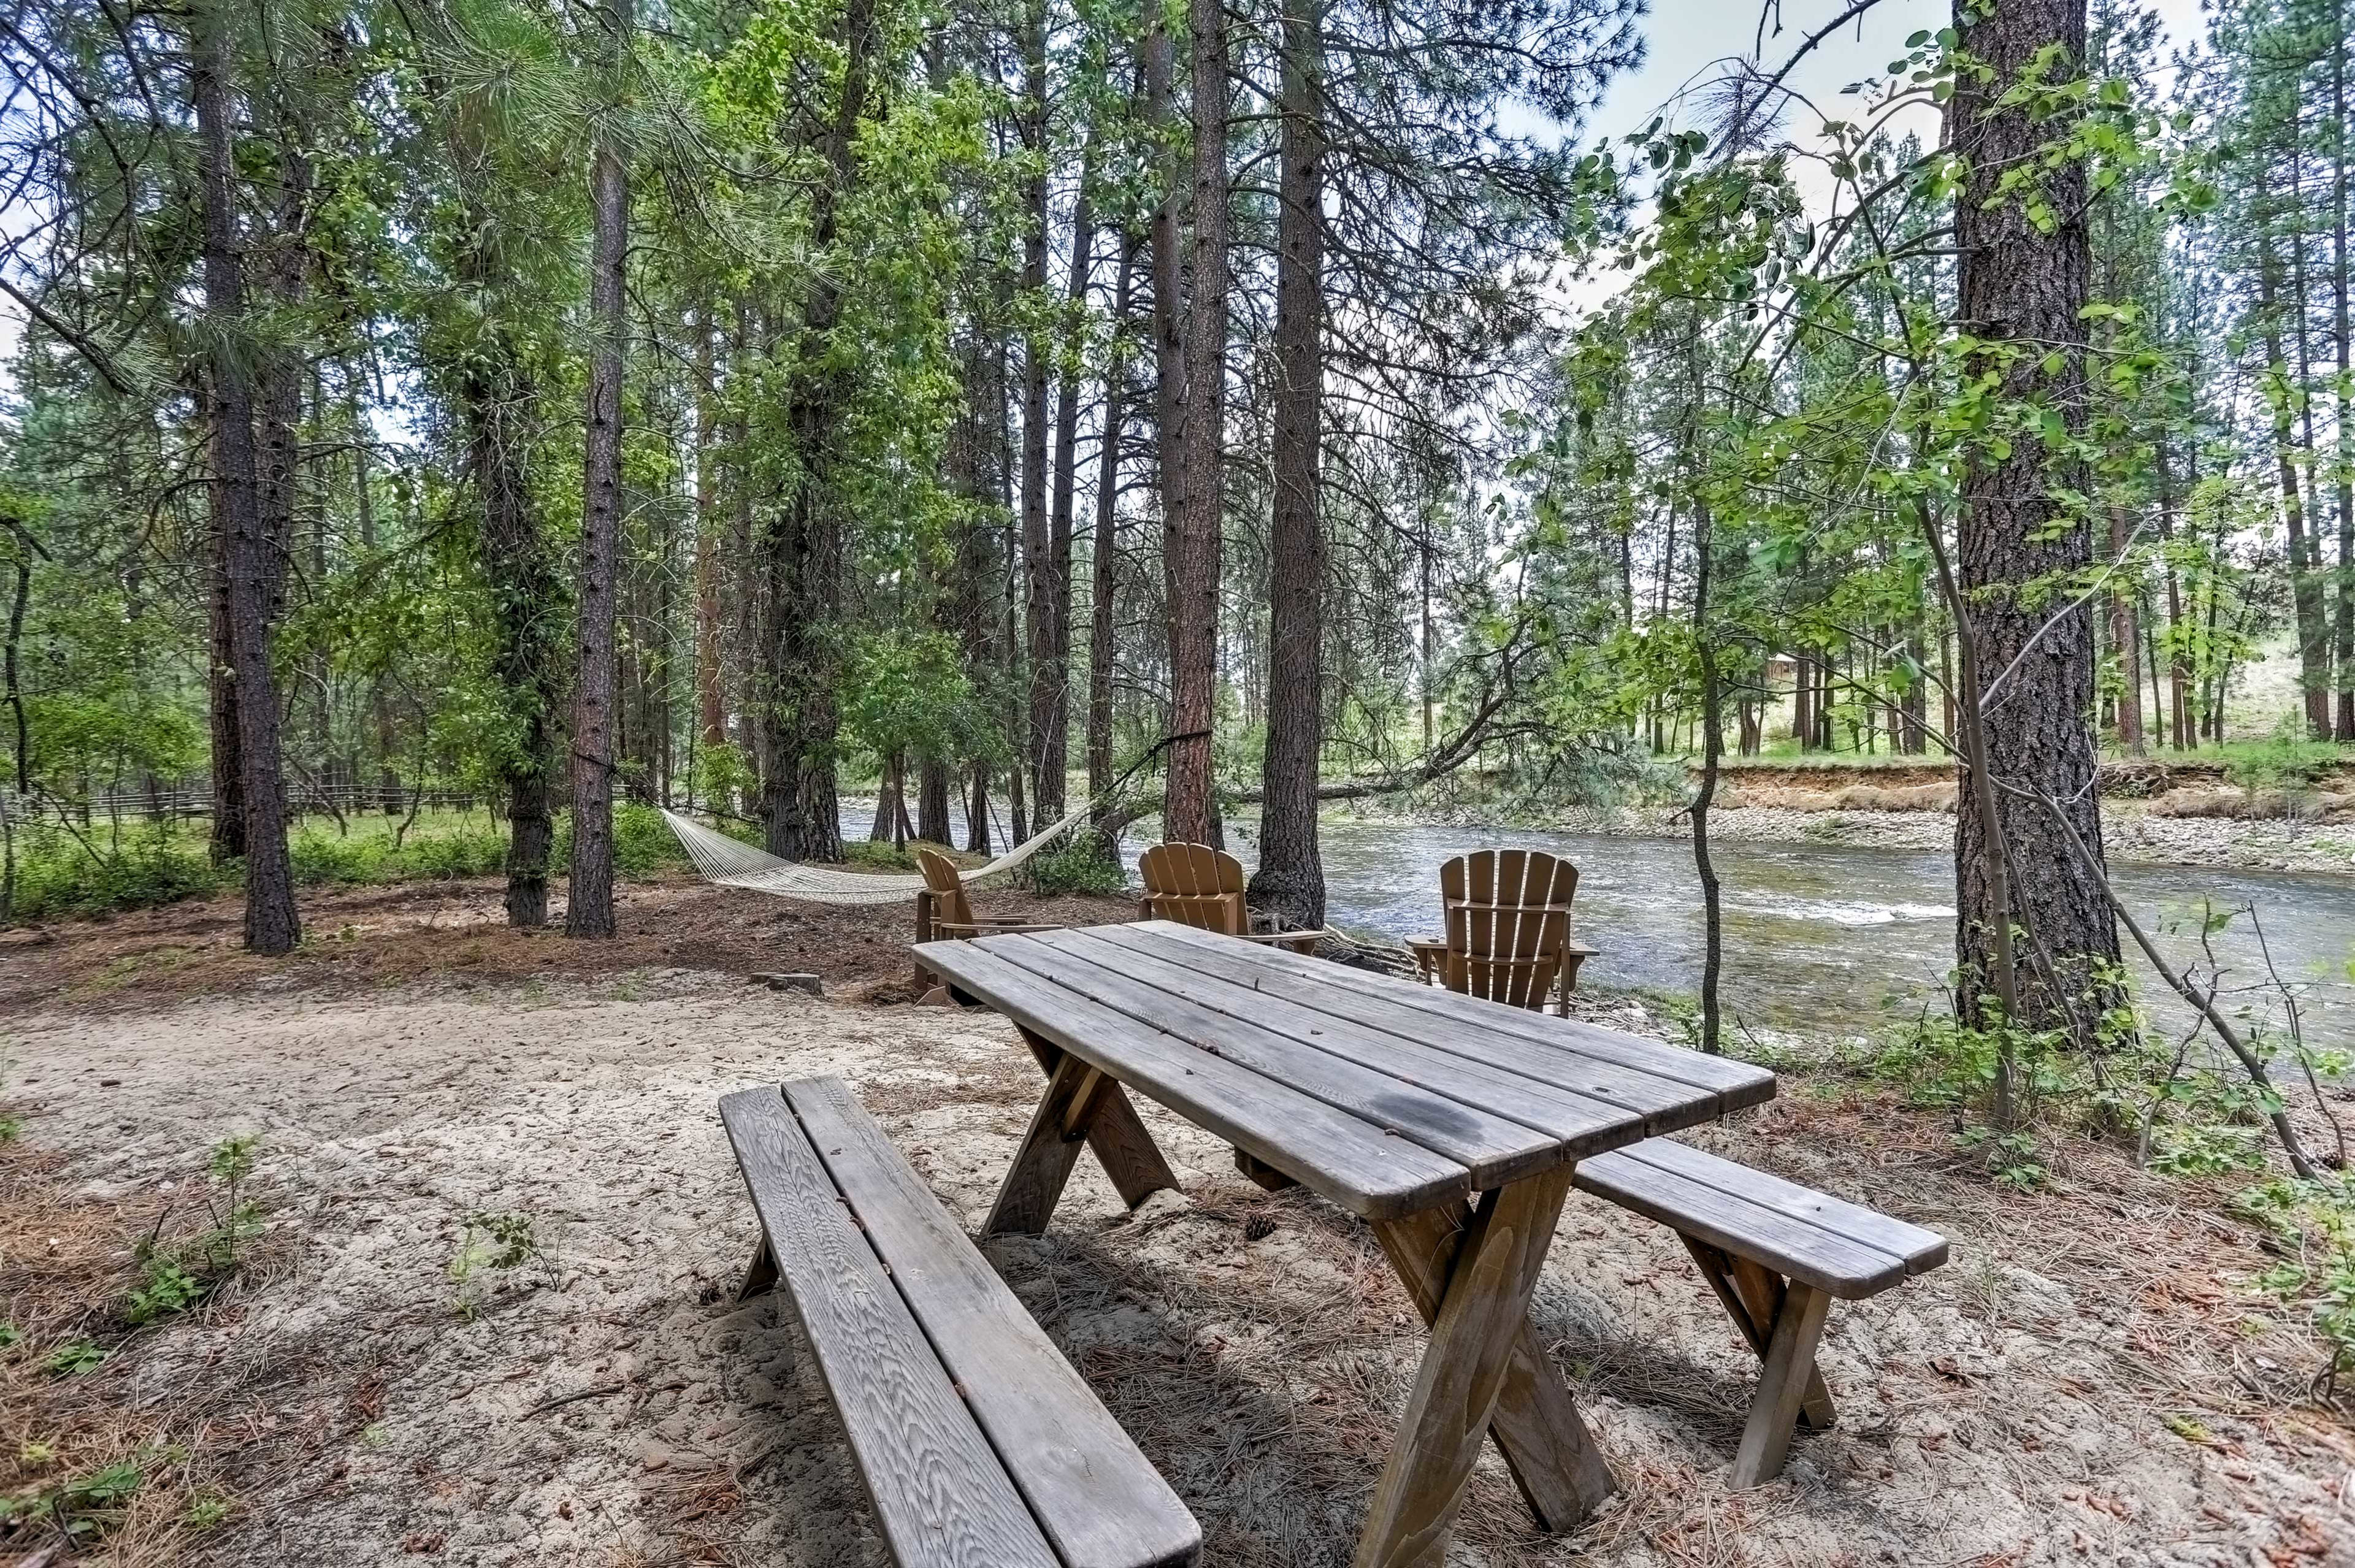 Enjoy a picnic, wildlife viewing or a simple cold beverage in the afternoon.